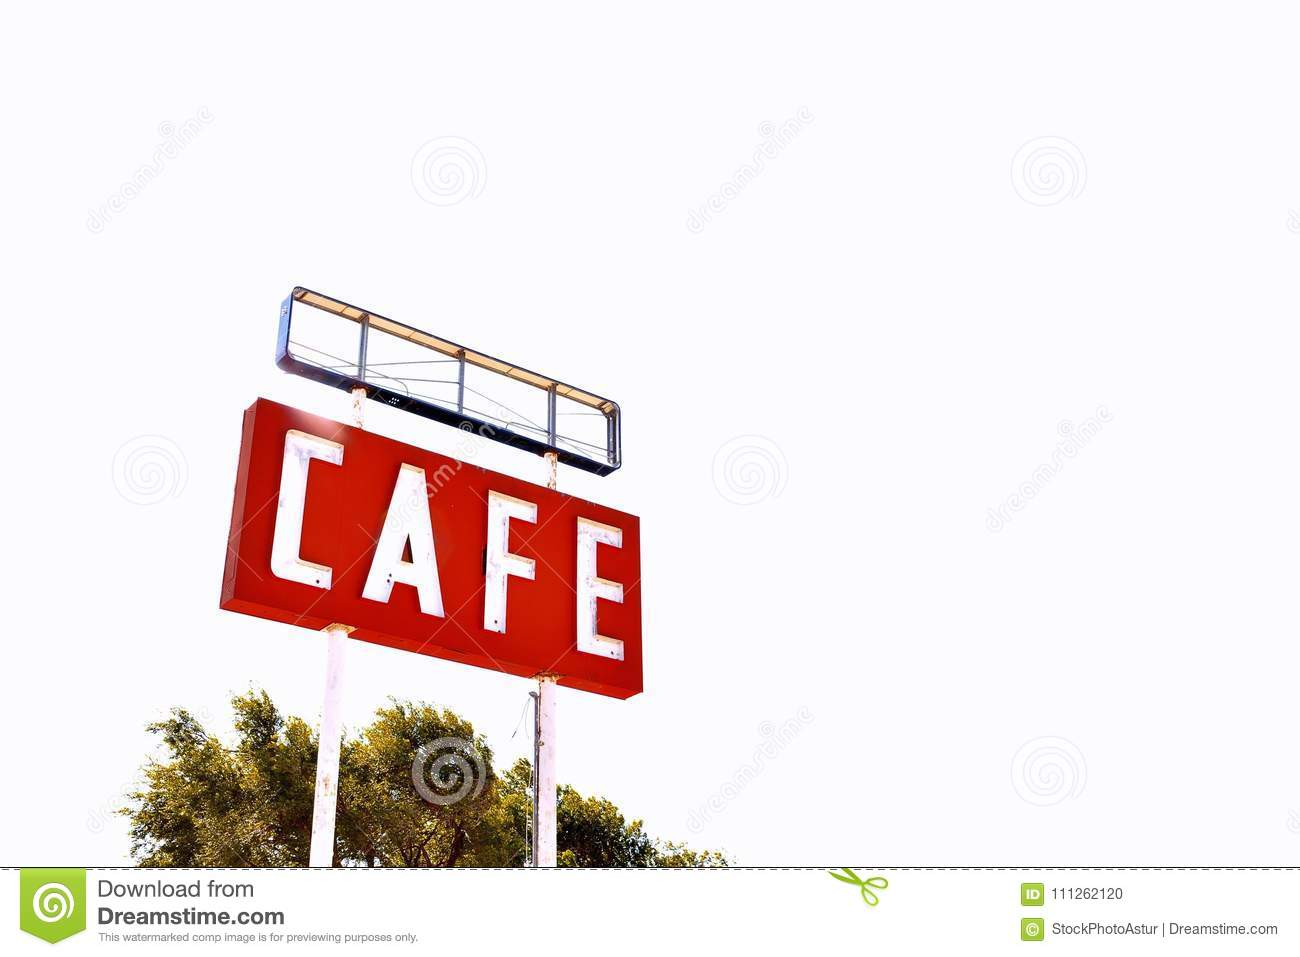 Christian cafe sign up